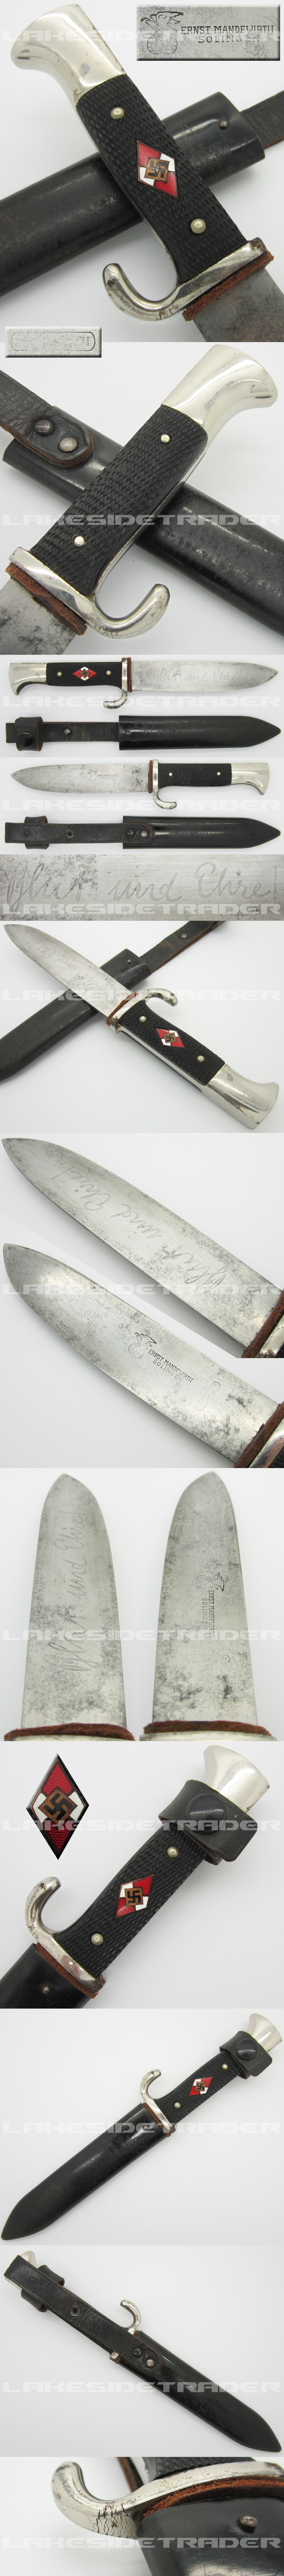 Early Hitler Youth Knife by Ernst Mandewirth